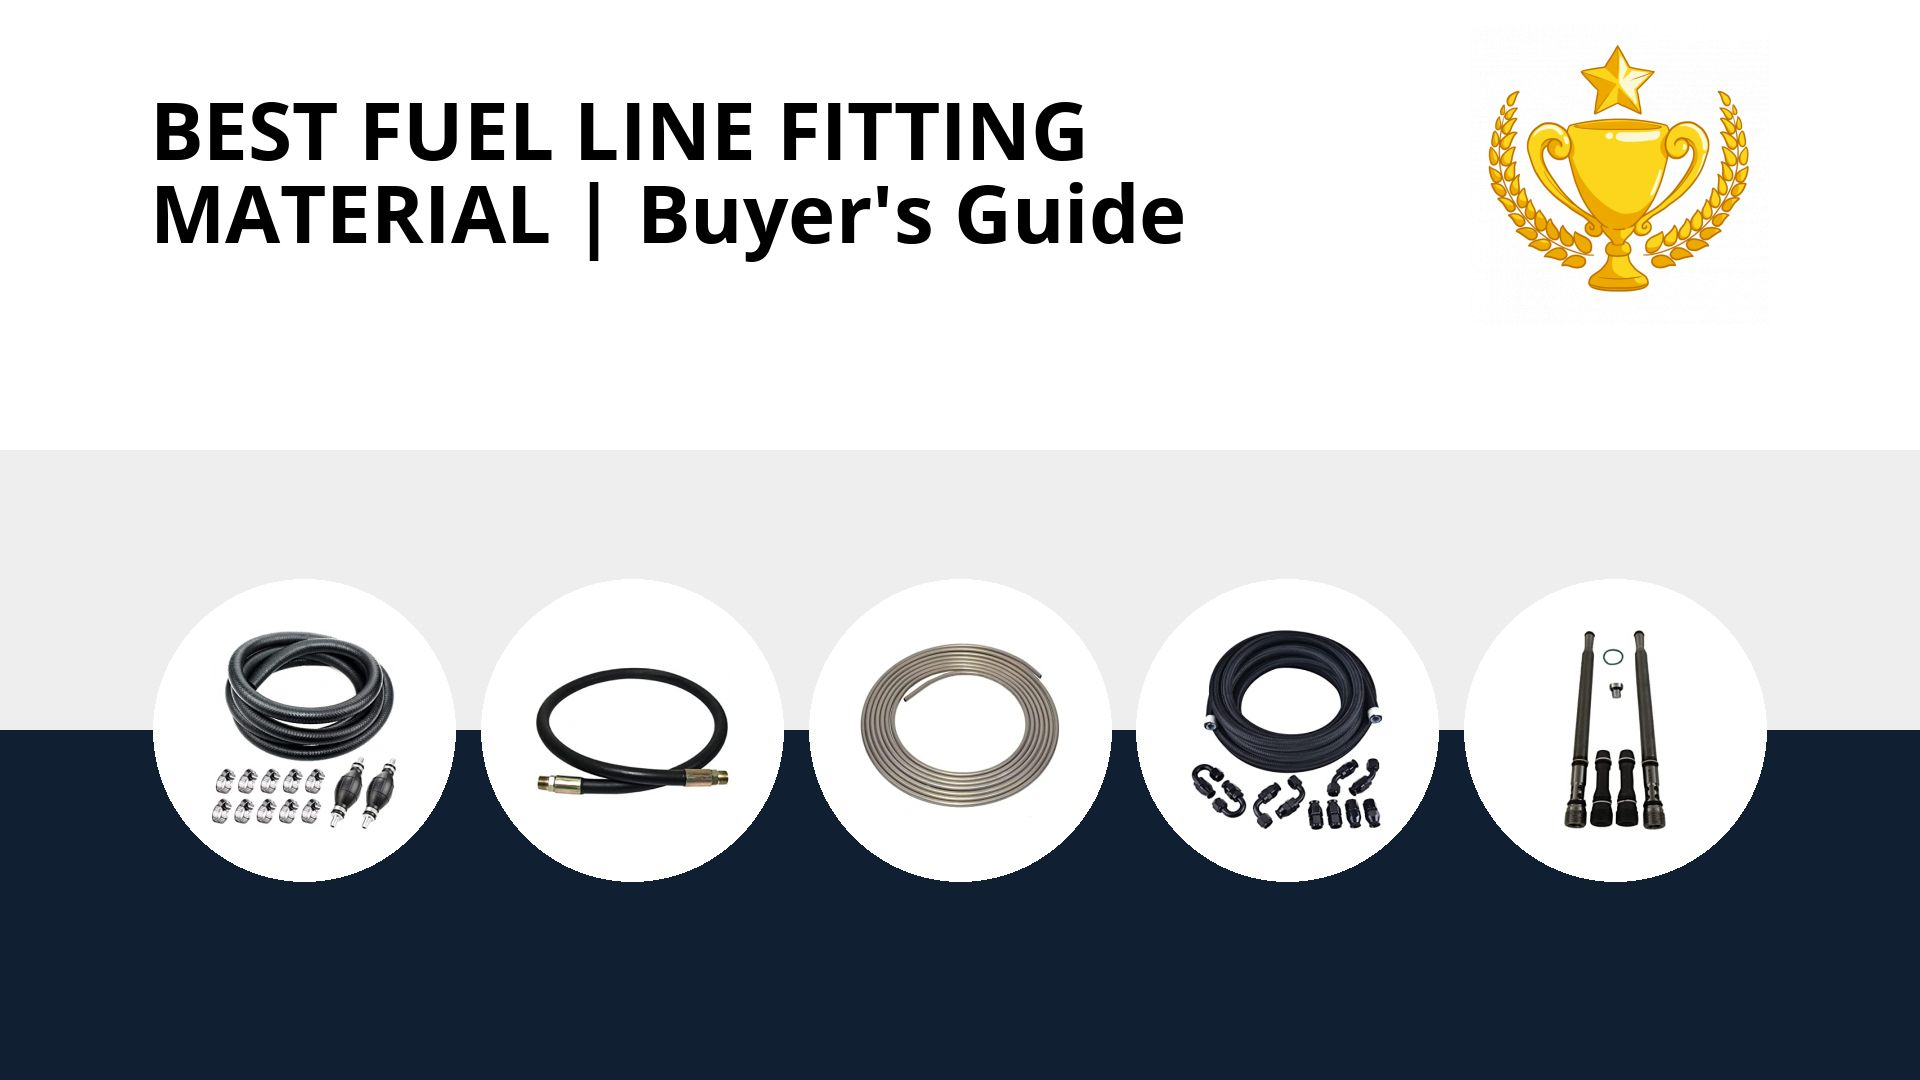 Best Fuel Line Fitting Material: image